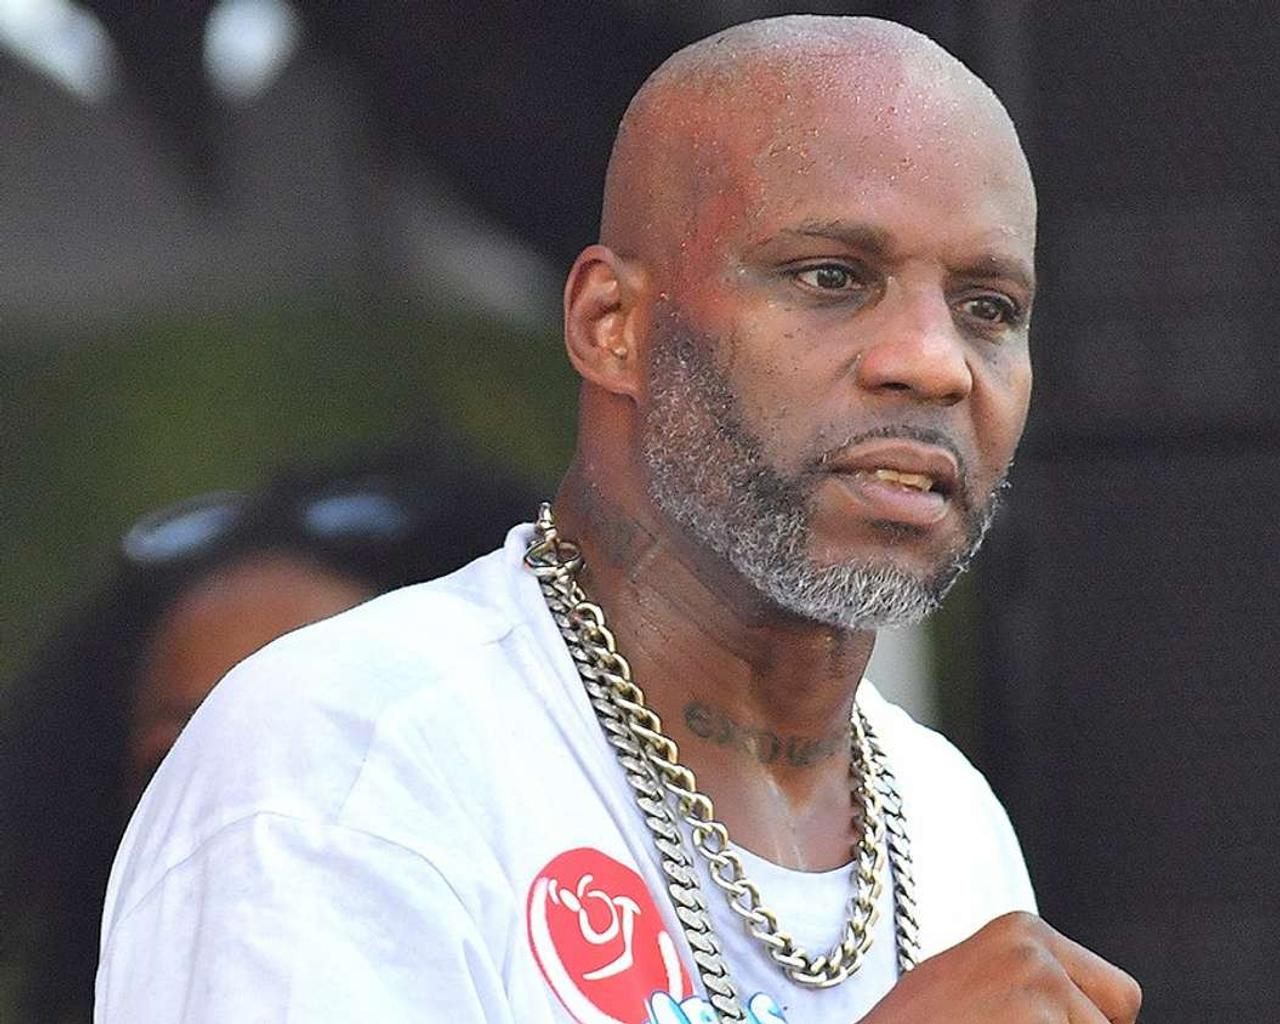 DMX, a dark-skinned rapper and actor, dies at the age of 50